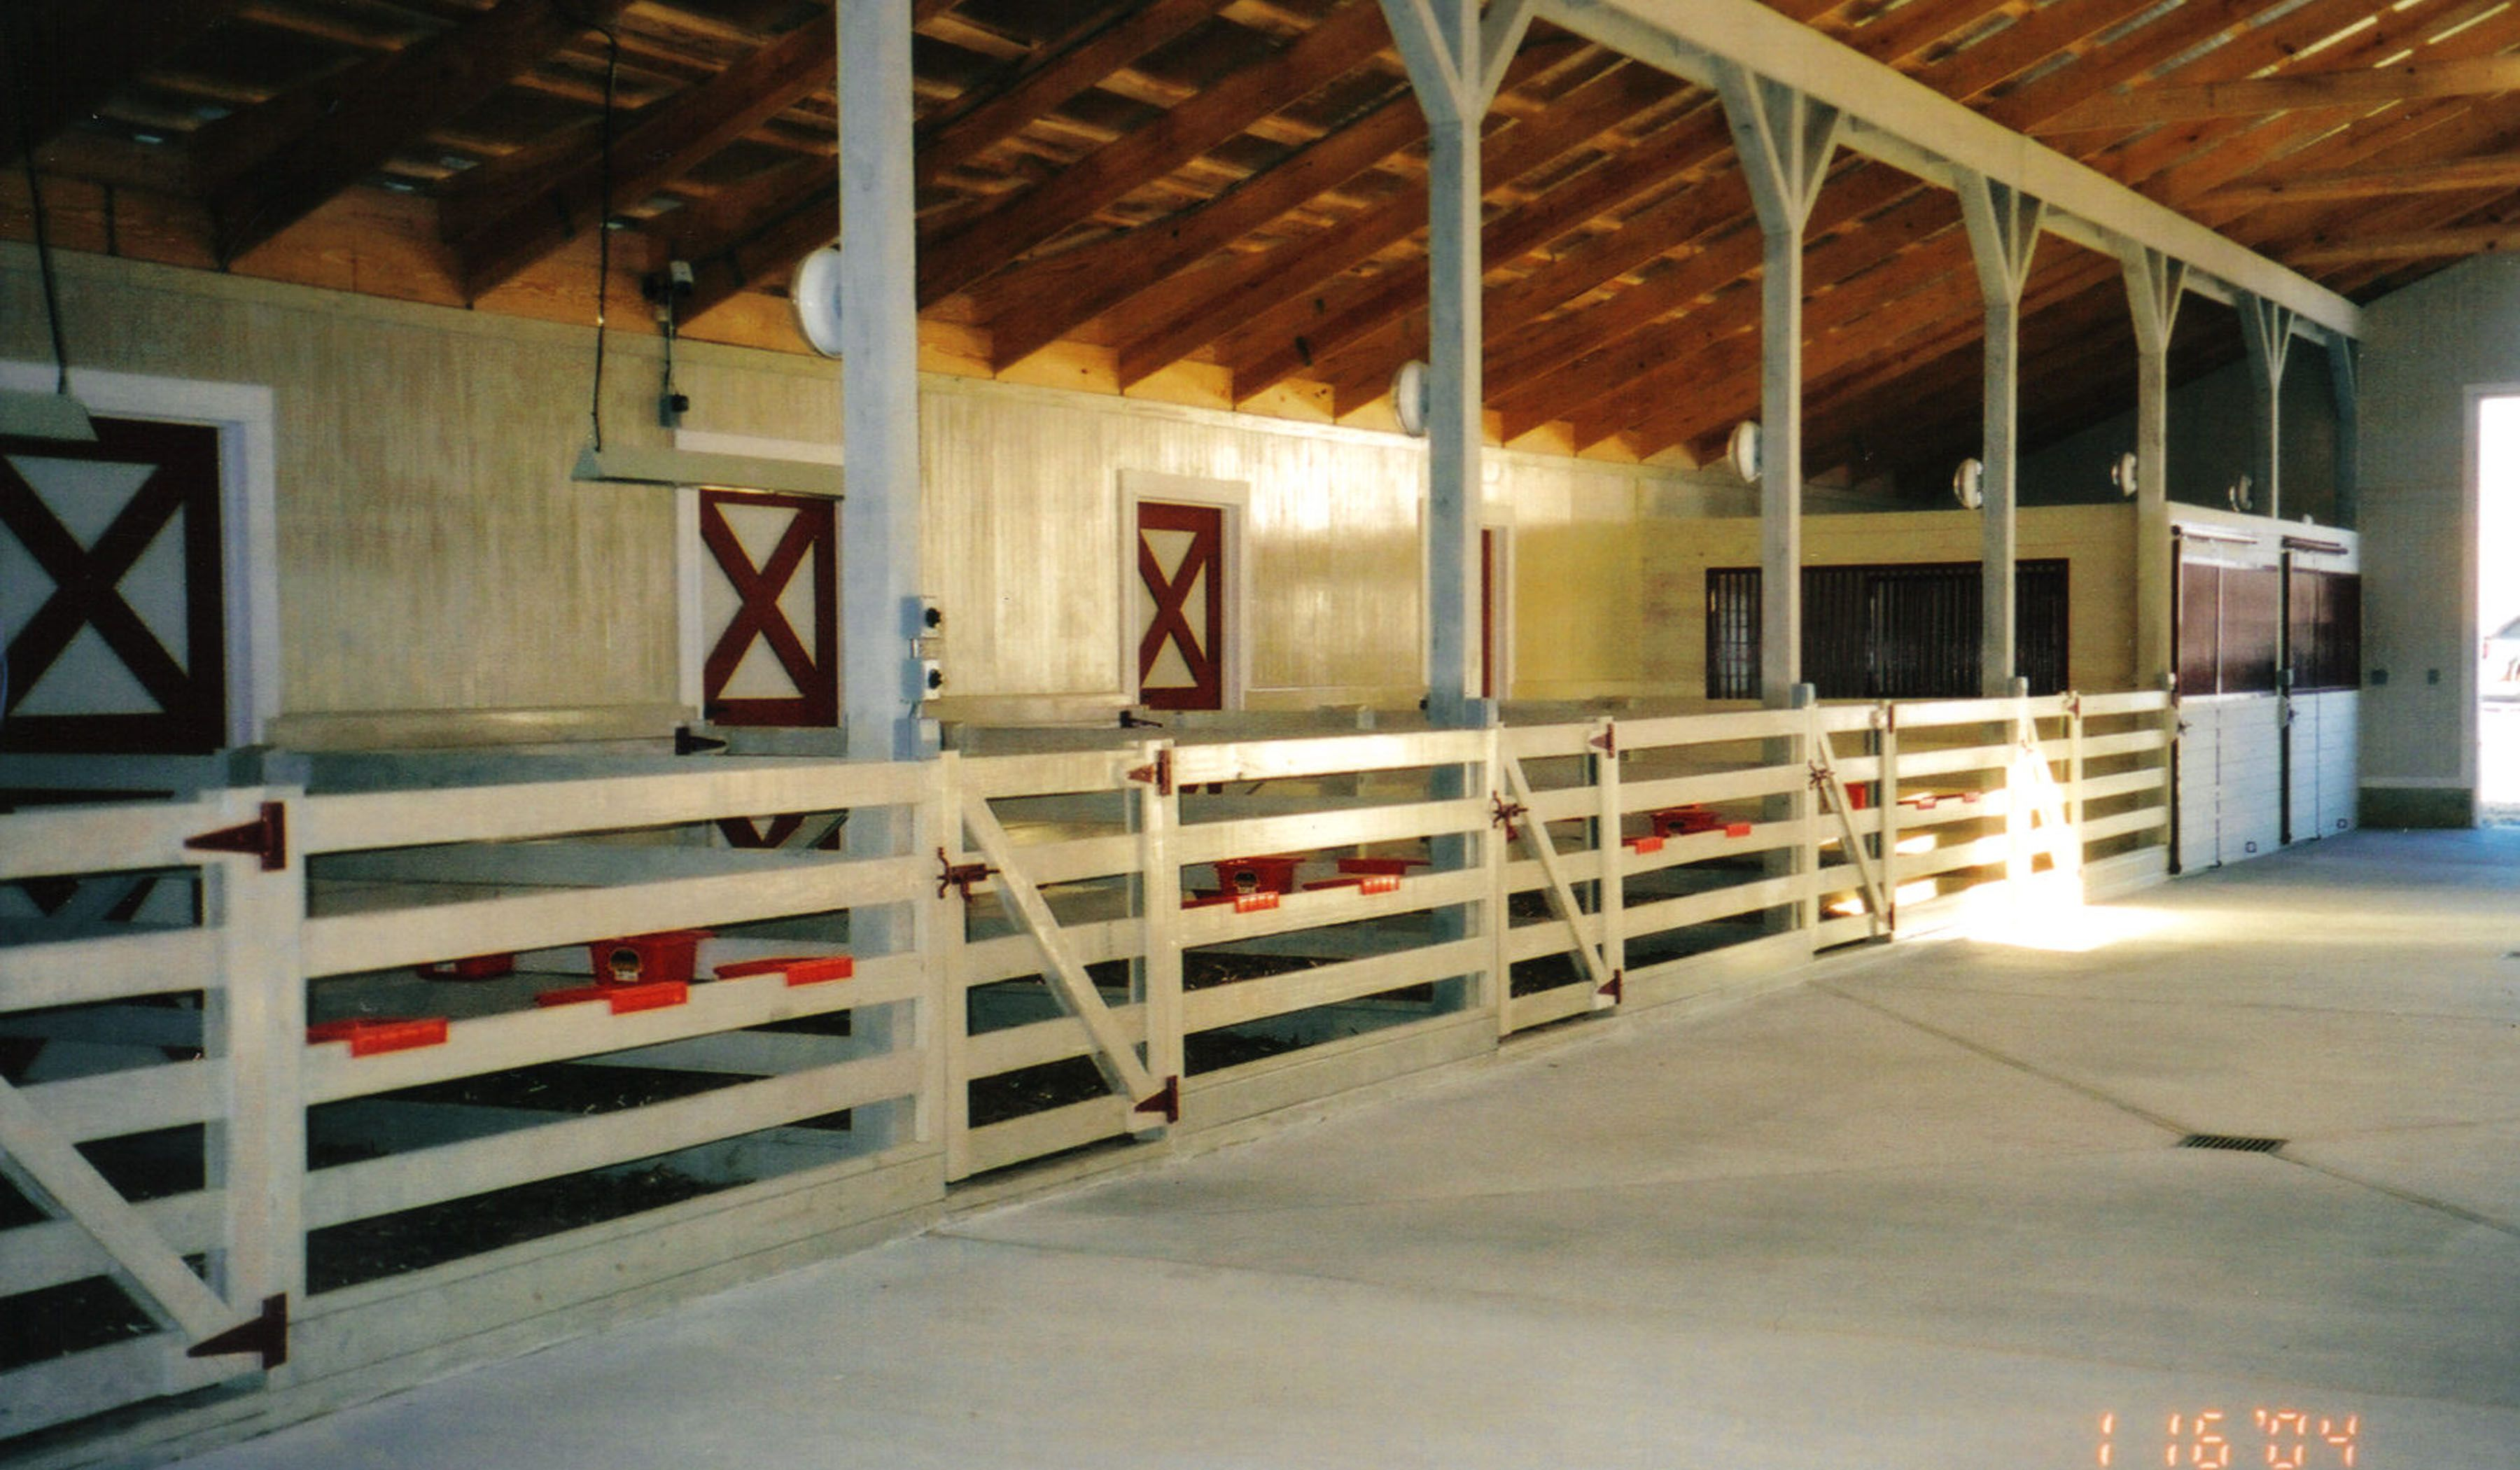 design decor inside barn designs with 42 x 108 horse barn interior design decor inside barn designs with 42 x 108 horse barn interior horse barn design - Horse Stall Design Ideas